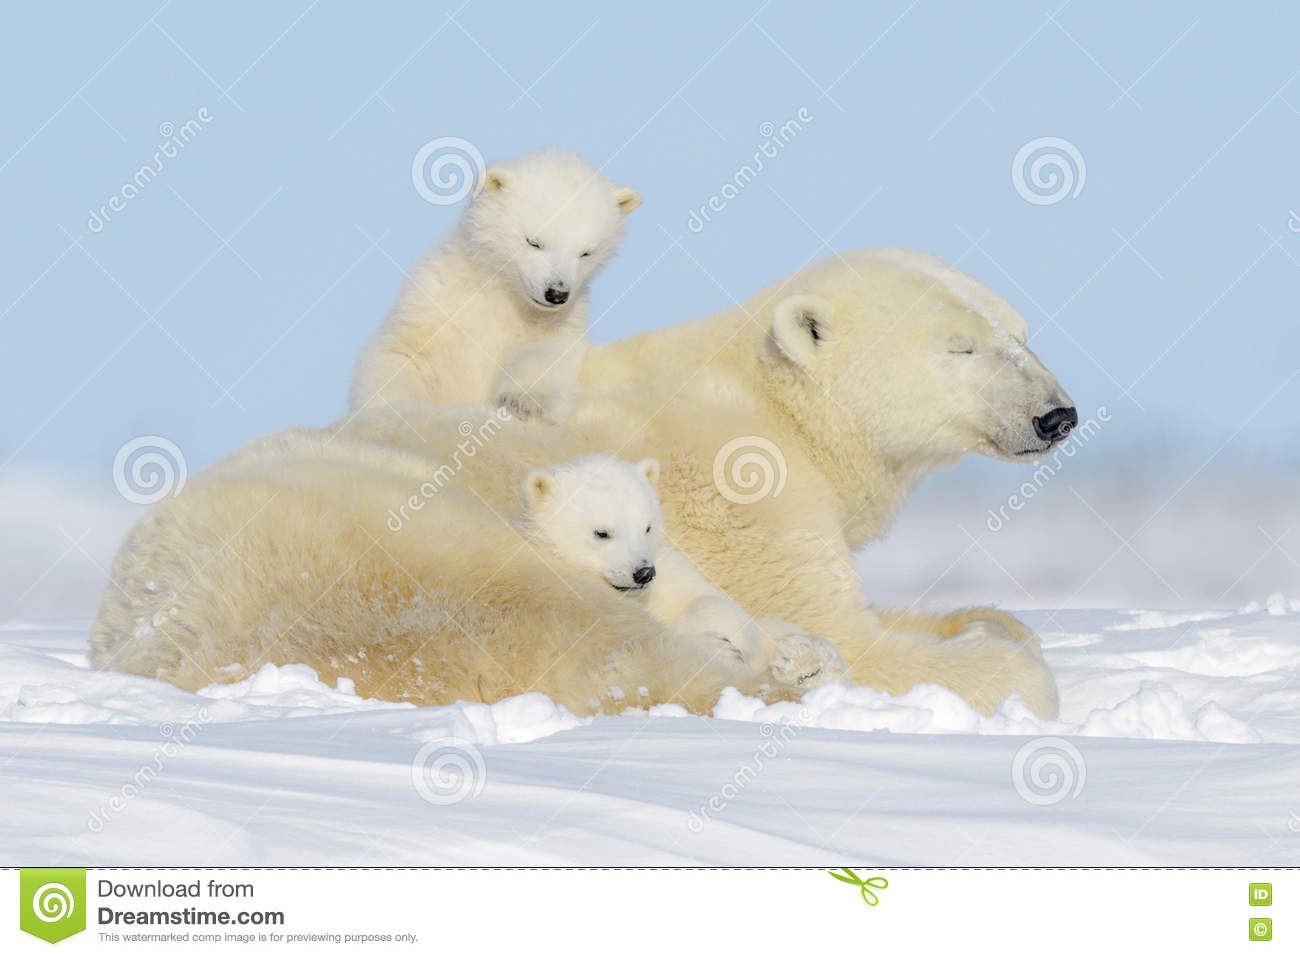 Polar bear (Ursus maritimus) with cubs